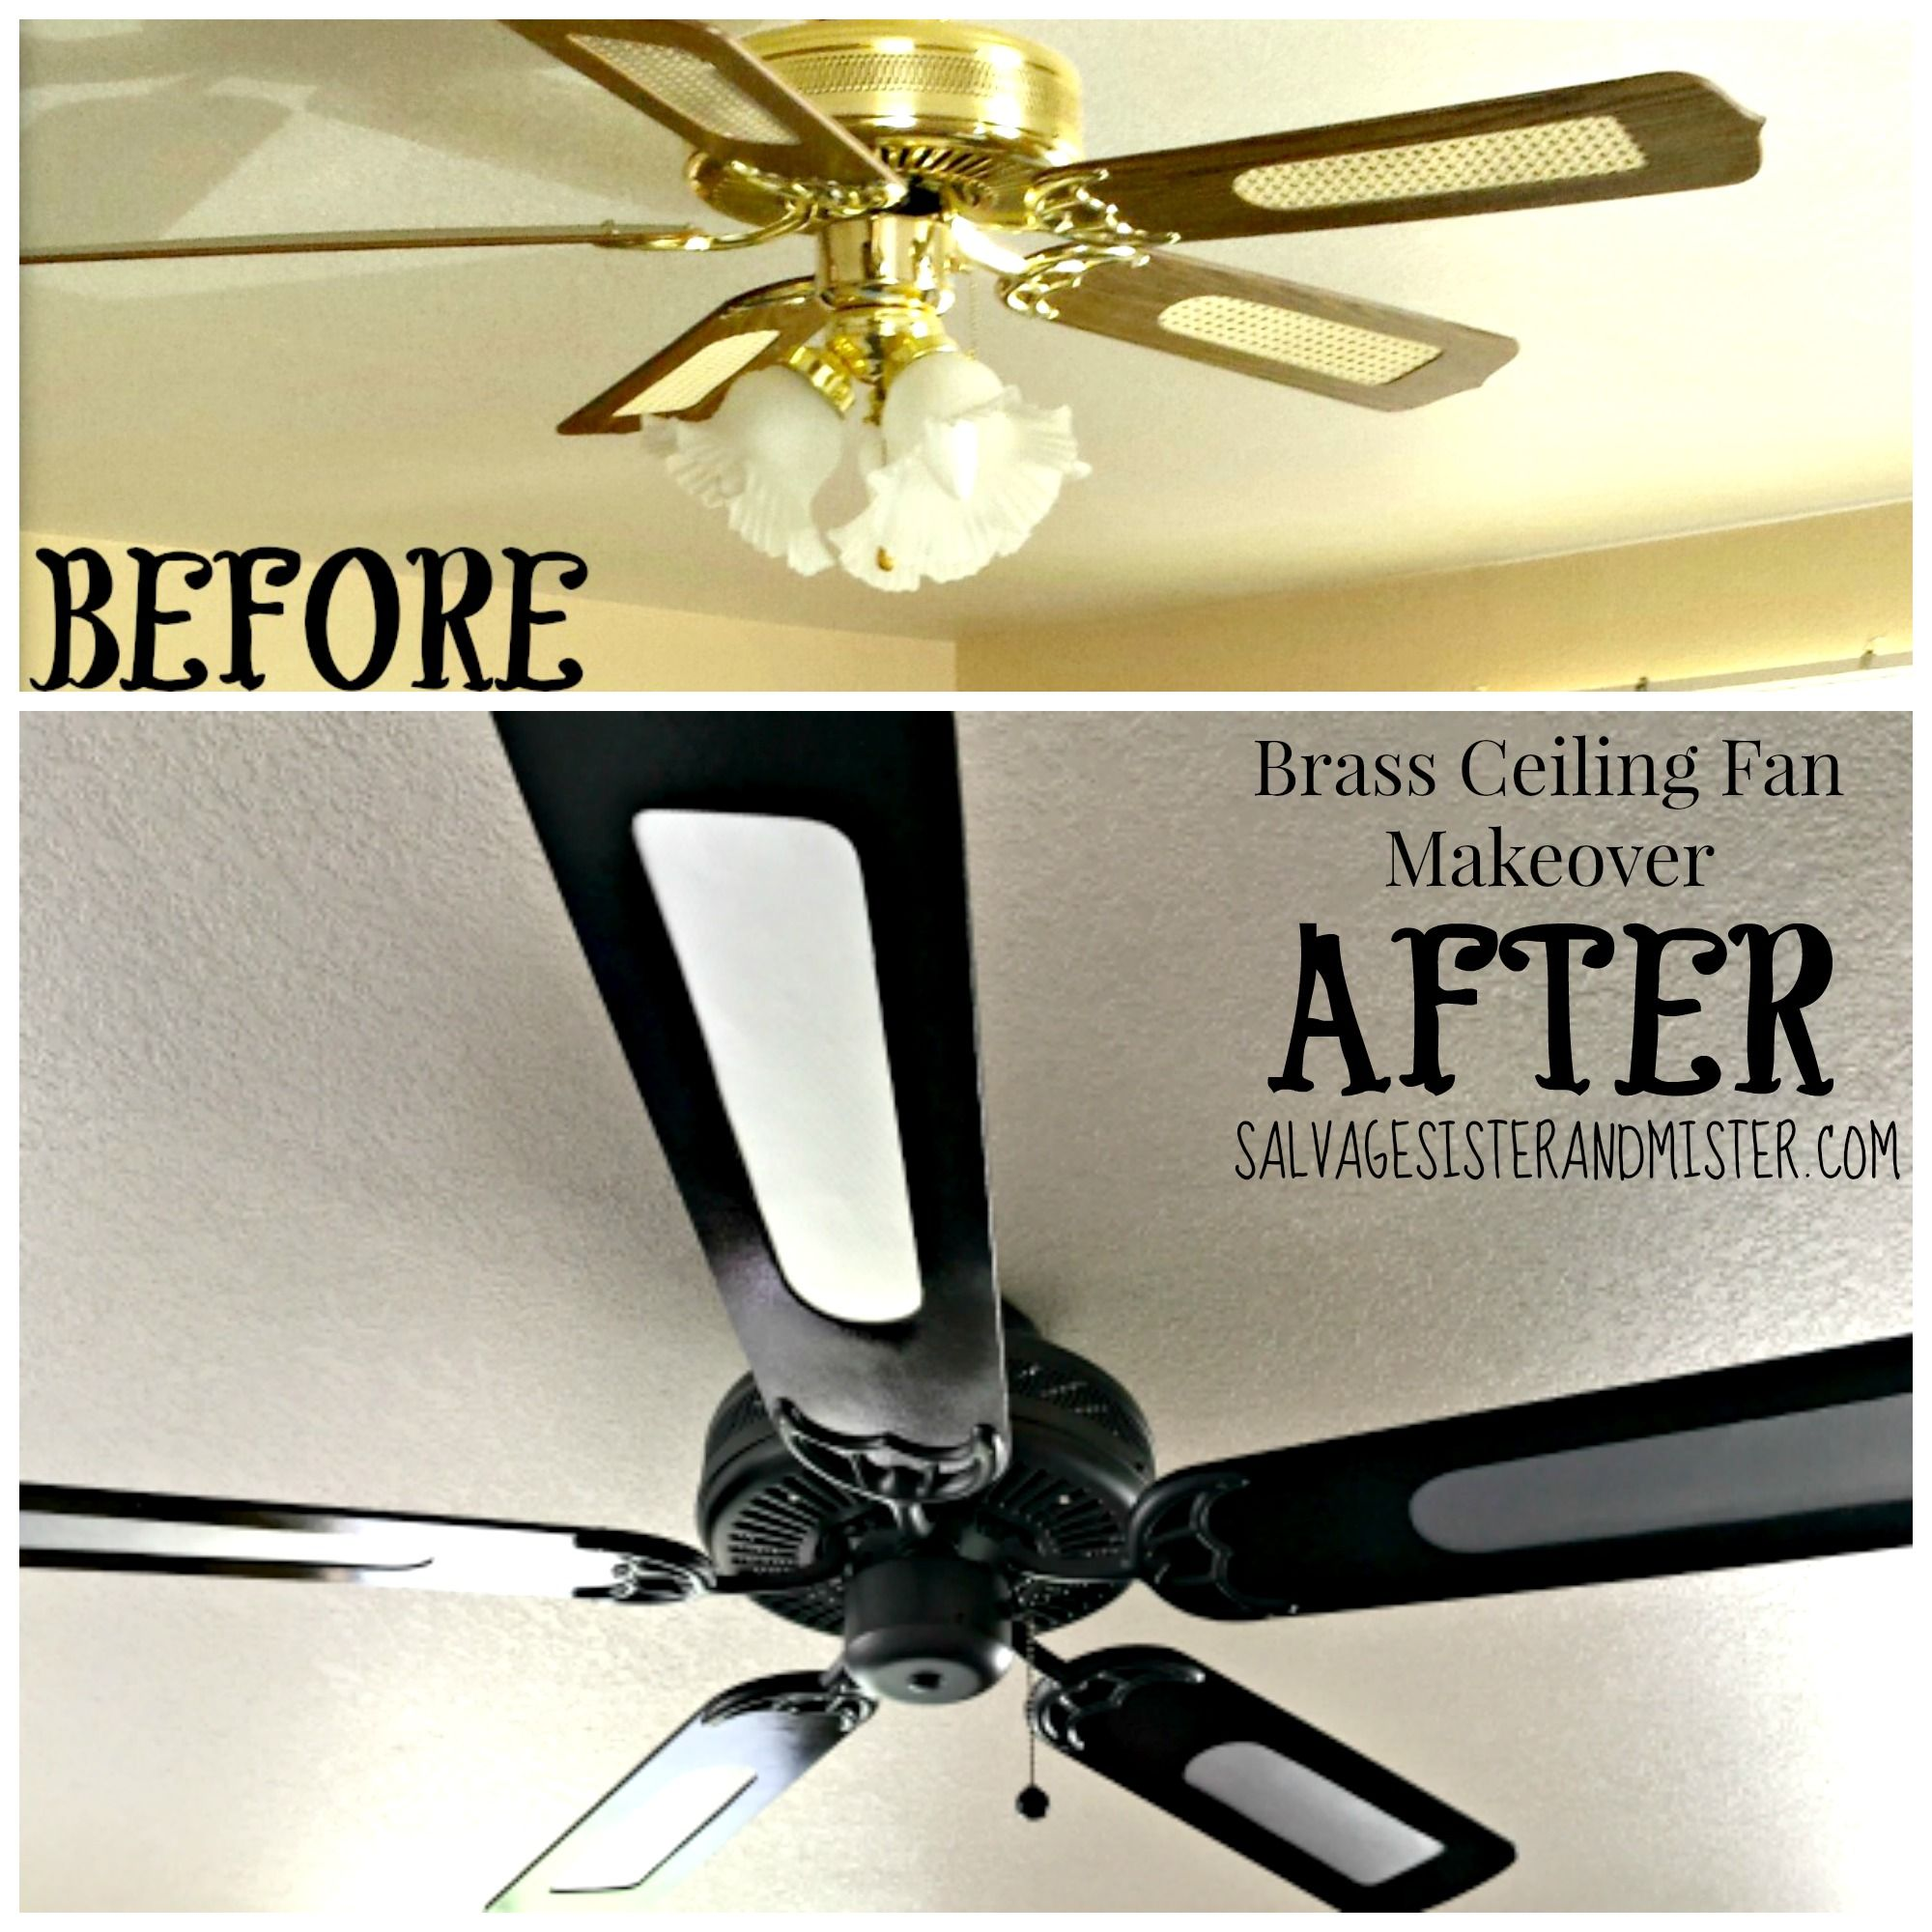 Brass Ceiling Fan Makeover Orc Ceiling Fan Makeover Brass